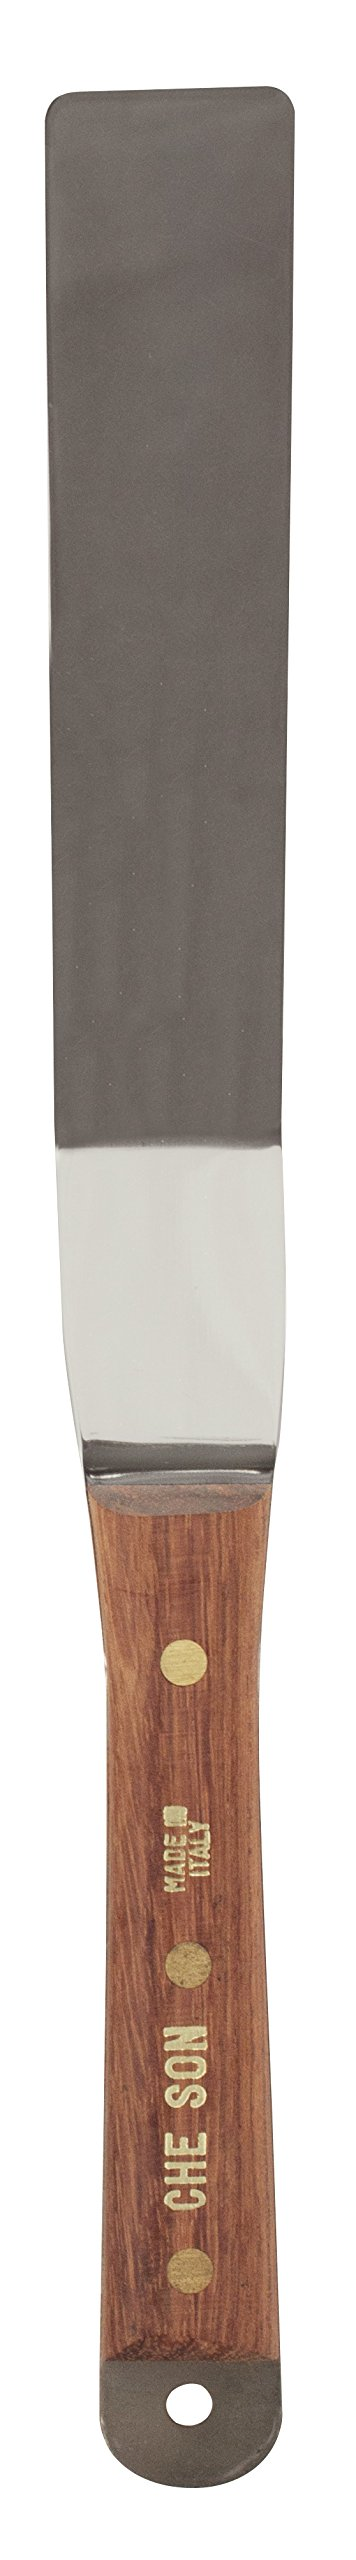 Jack Richeson 800895 6-7/8'' x 1-1/4'' Stainless Steel Spatula by Jack Richeson